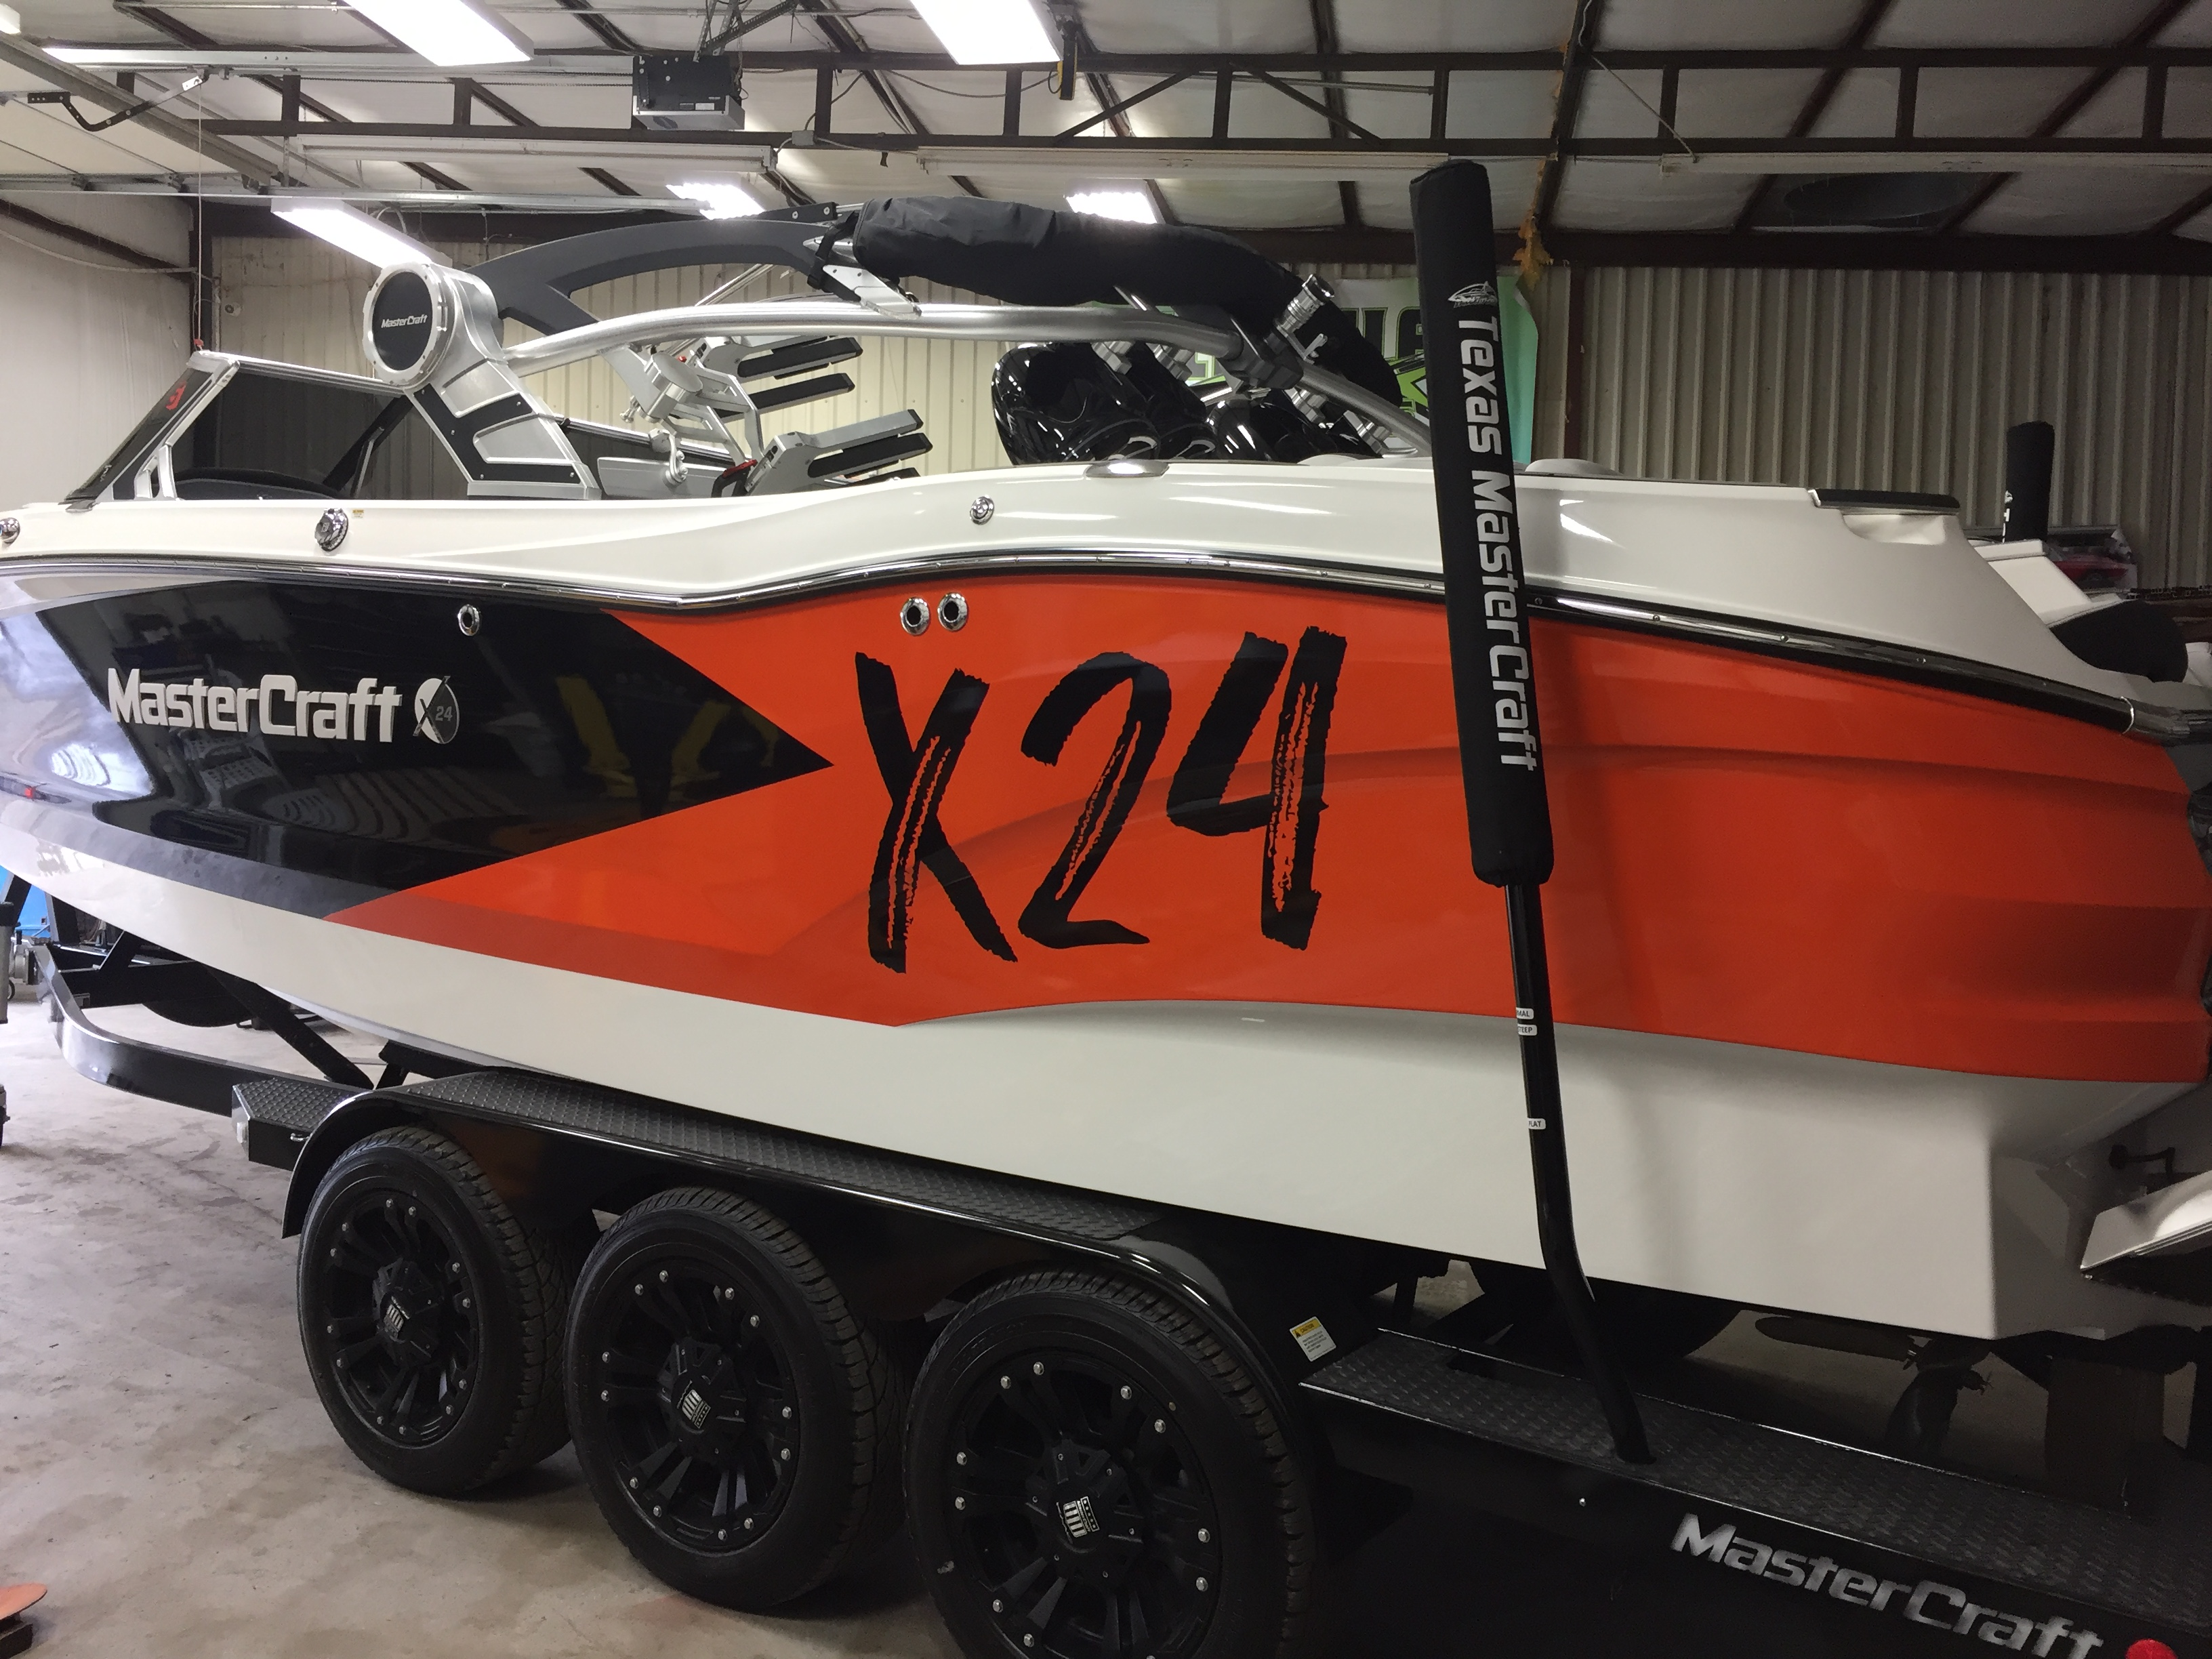 Boat Partial Wrap & Decals